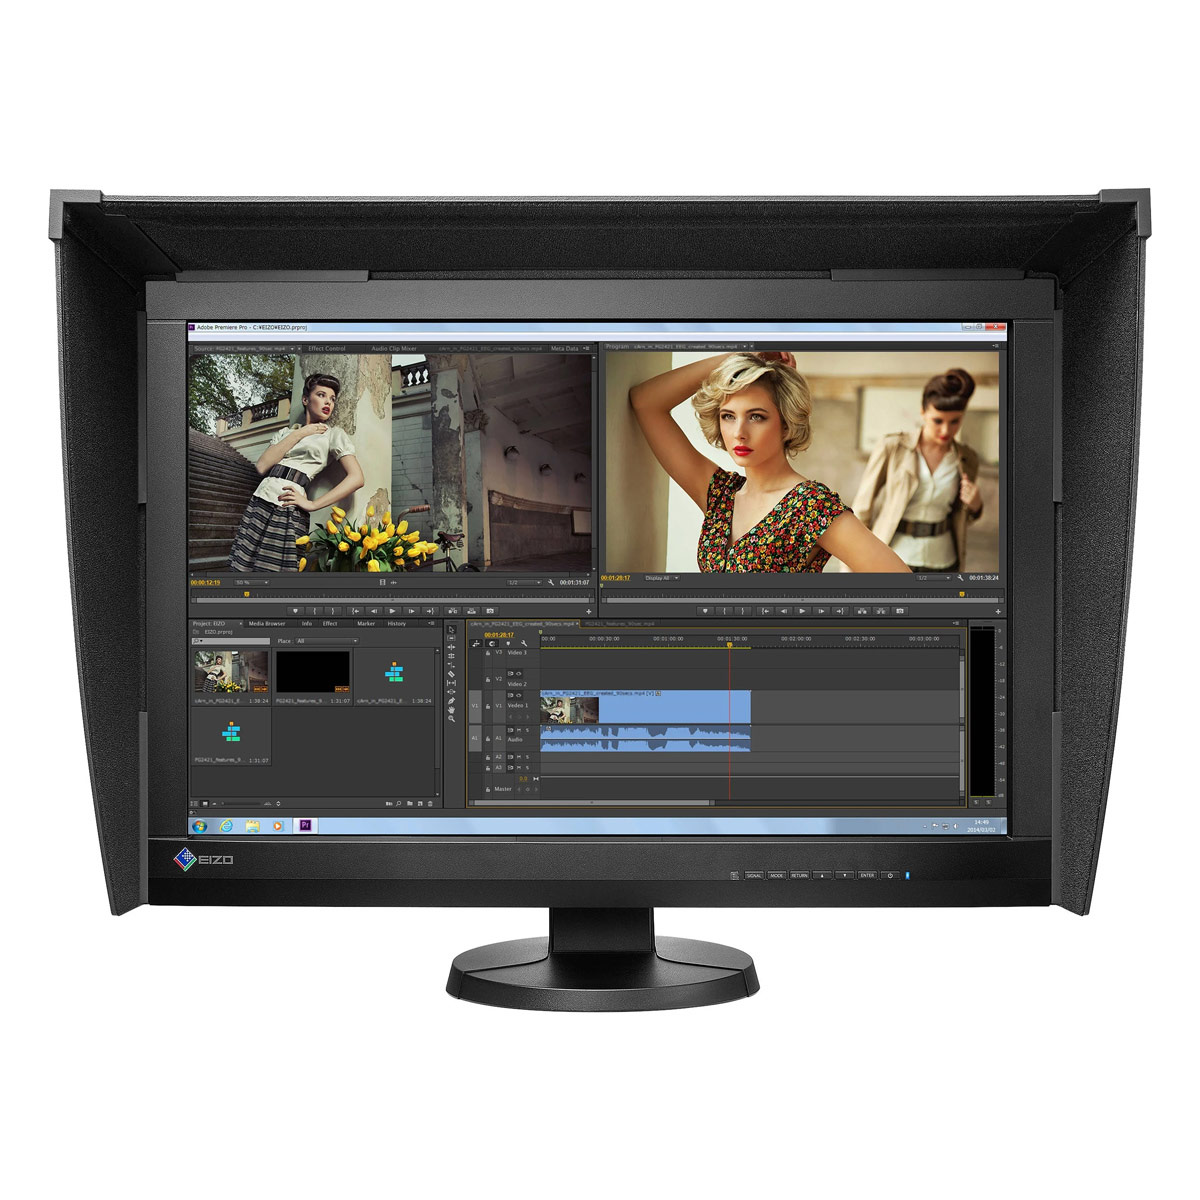 "EIZO 24"" ColorEdge CG247x Self-Calibrating Display with Hood"